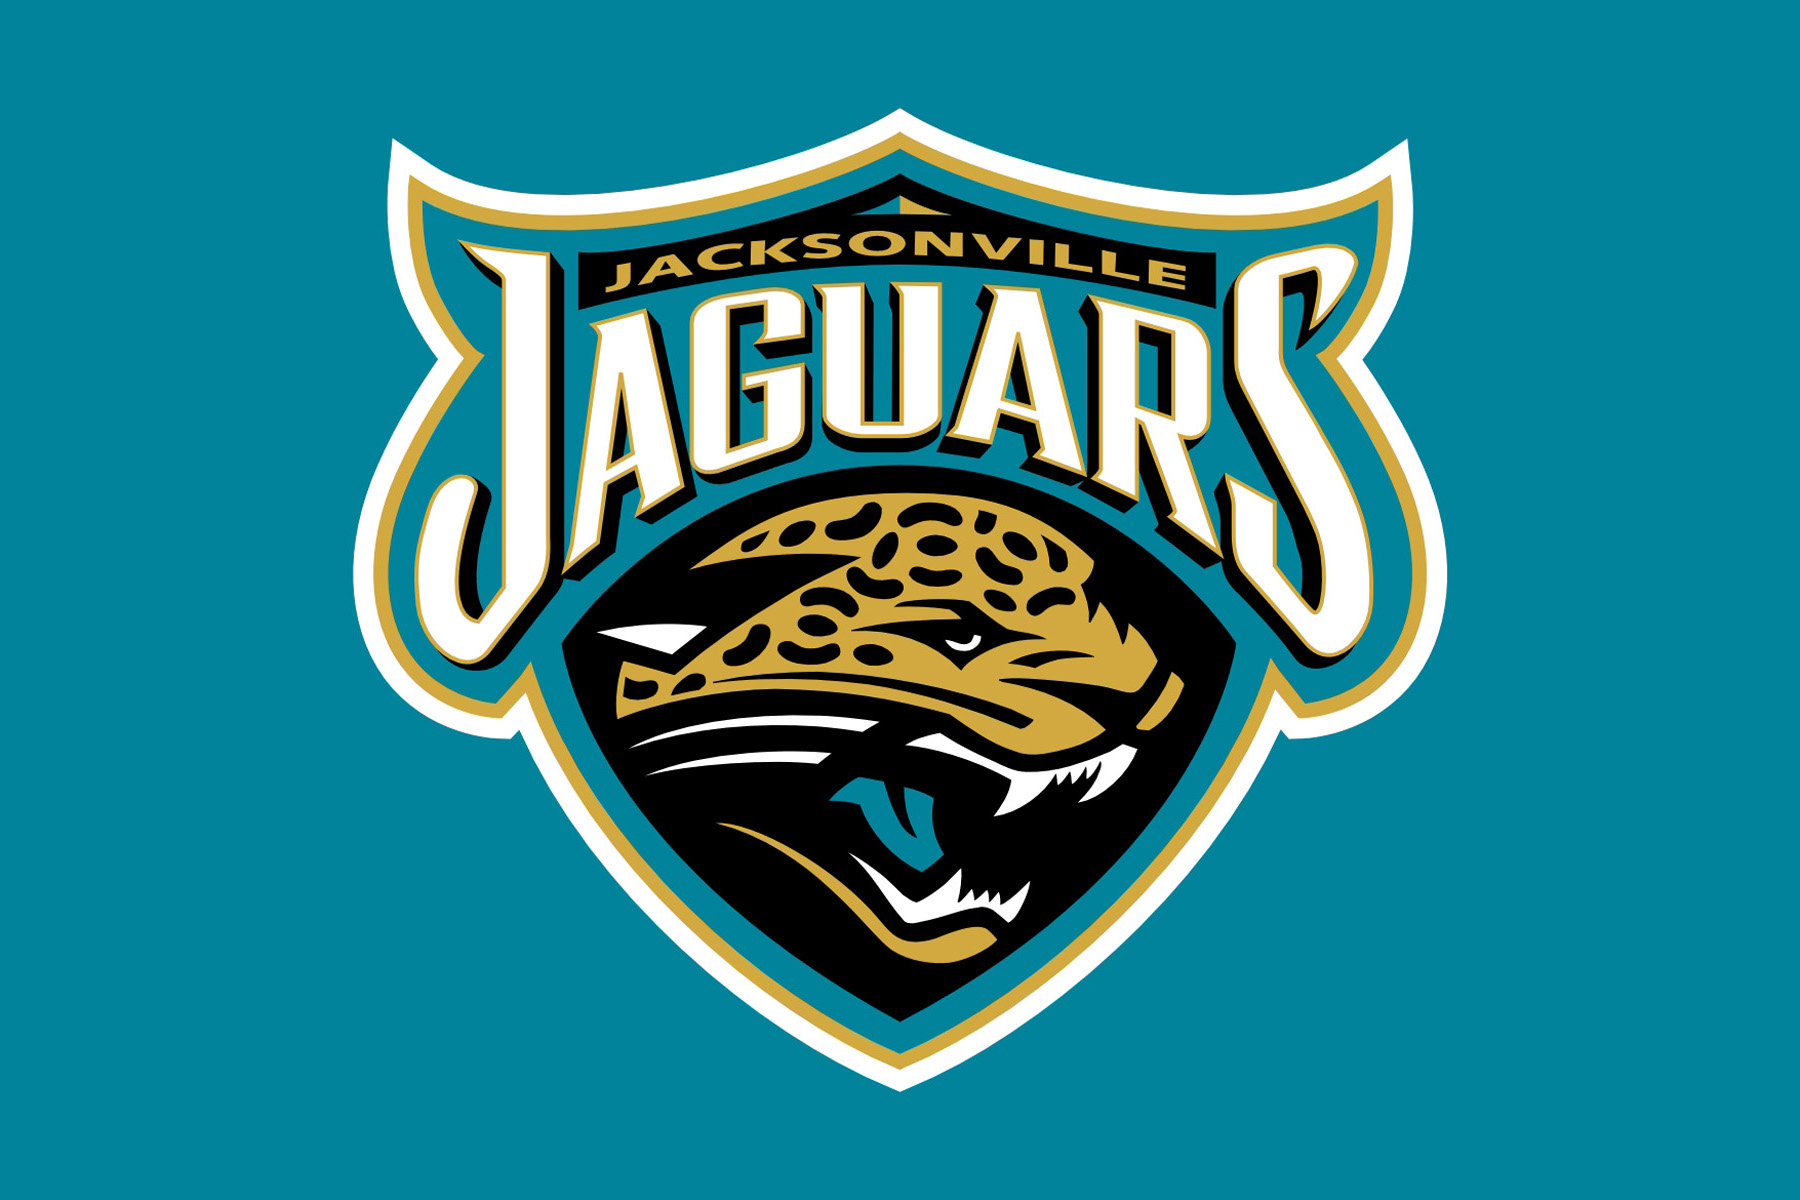 nfl jaguars jacksonville shield official printable football team head purchases expensive clubs sports logos most desktop cards 1800 6x4 sporteology